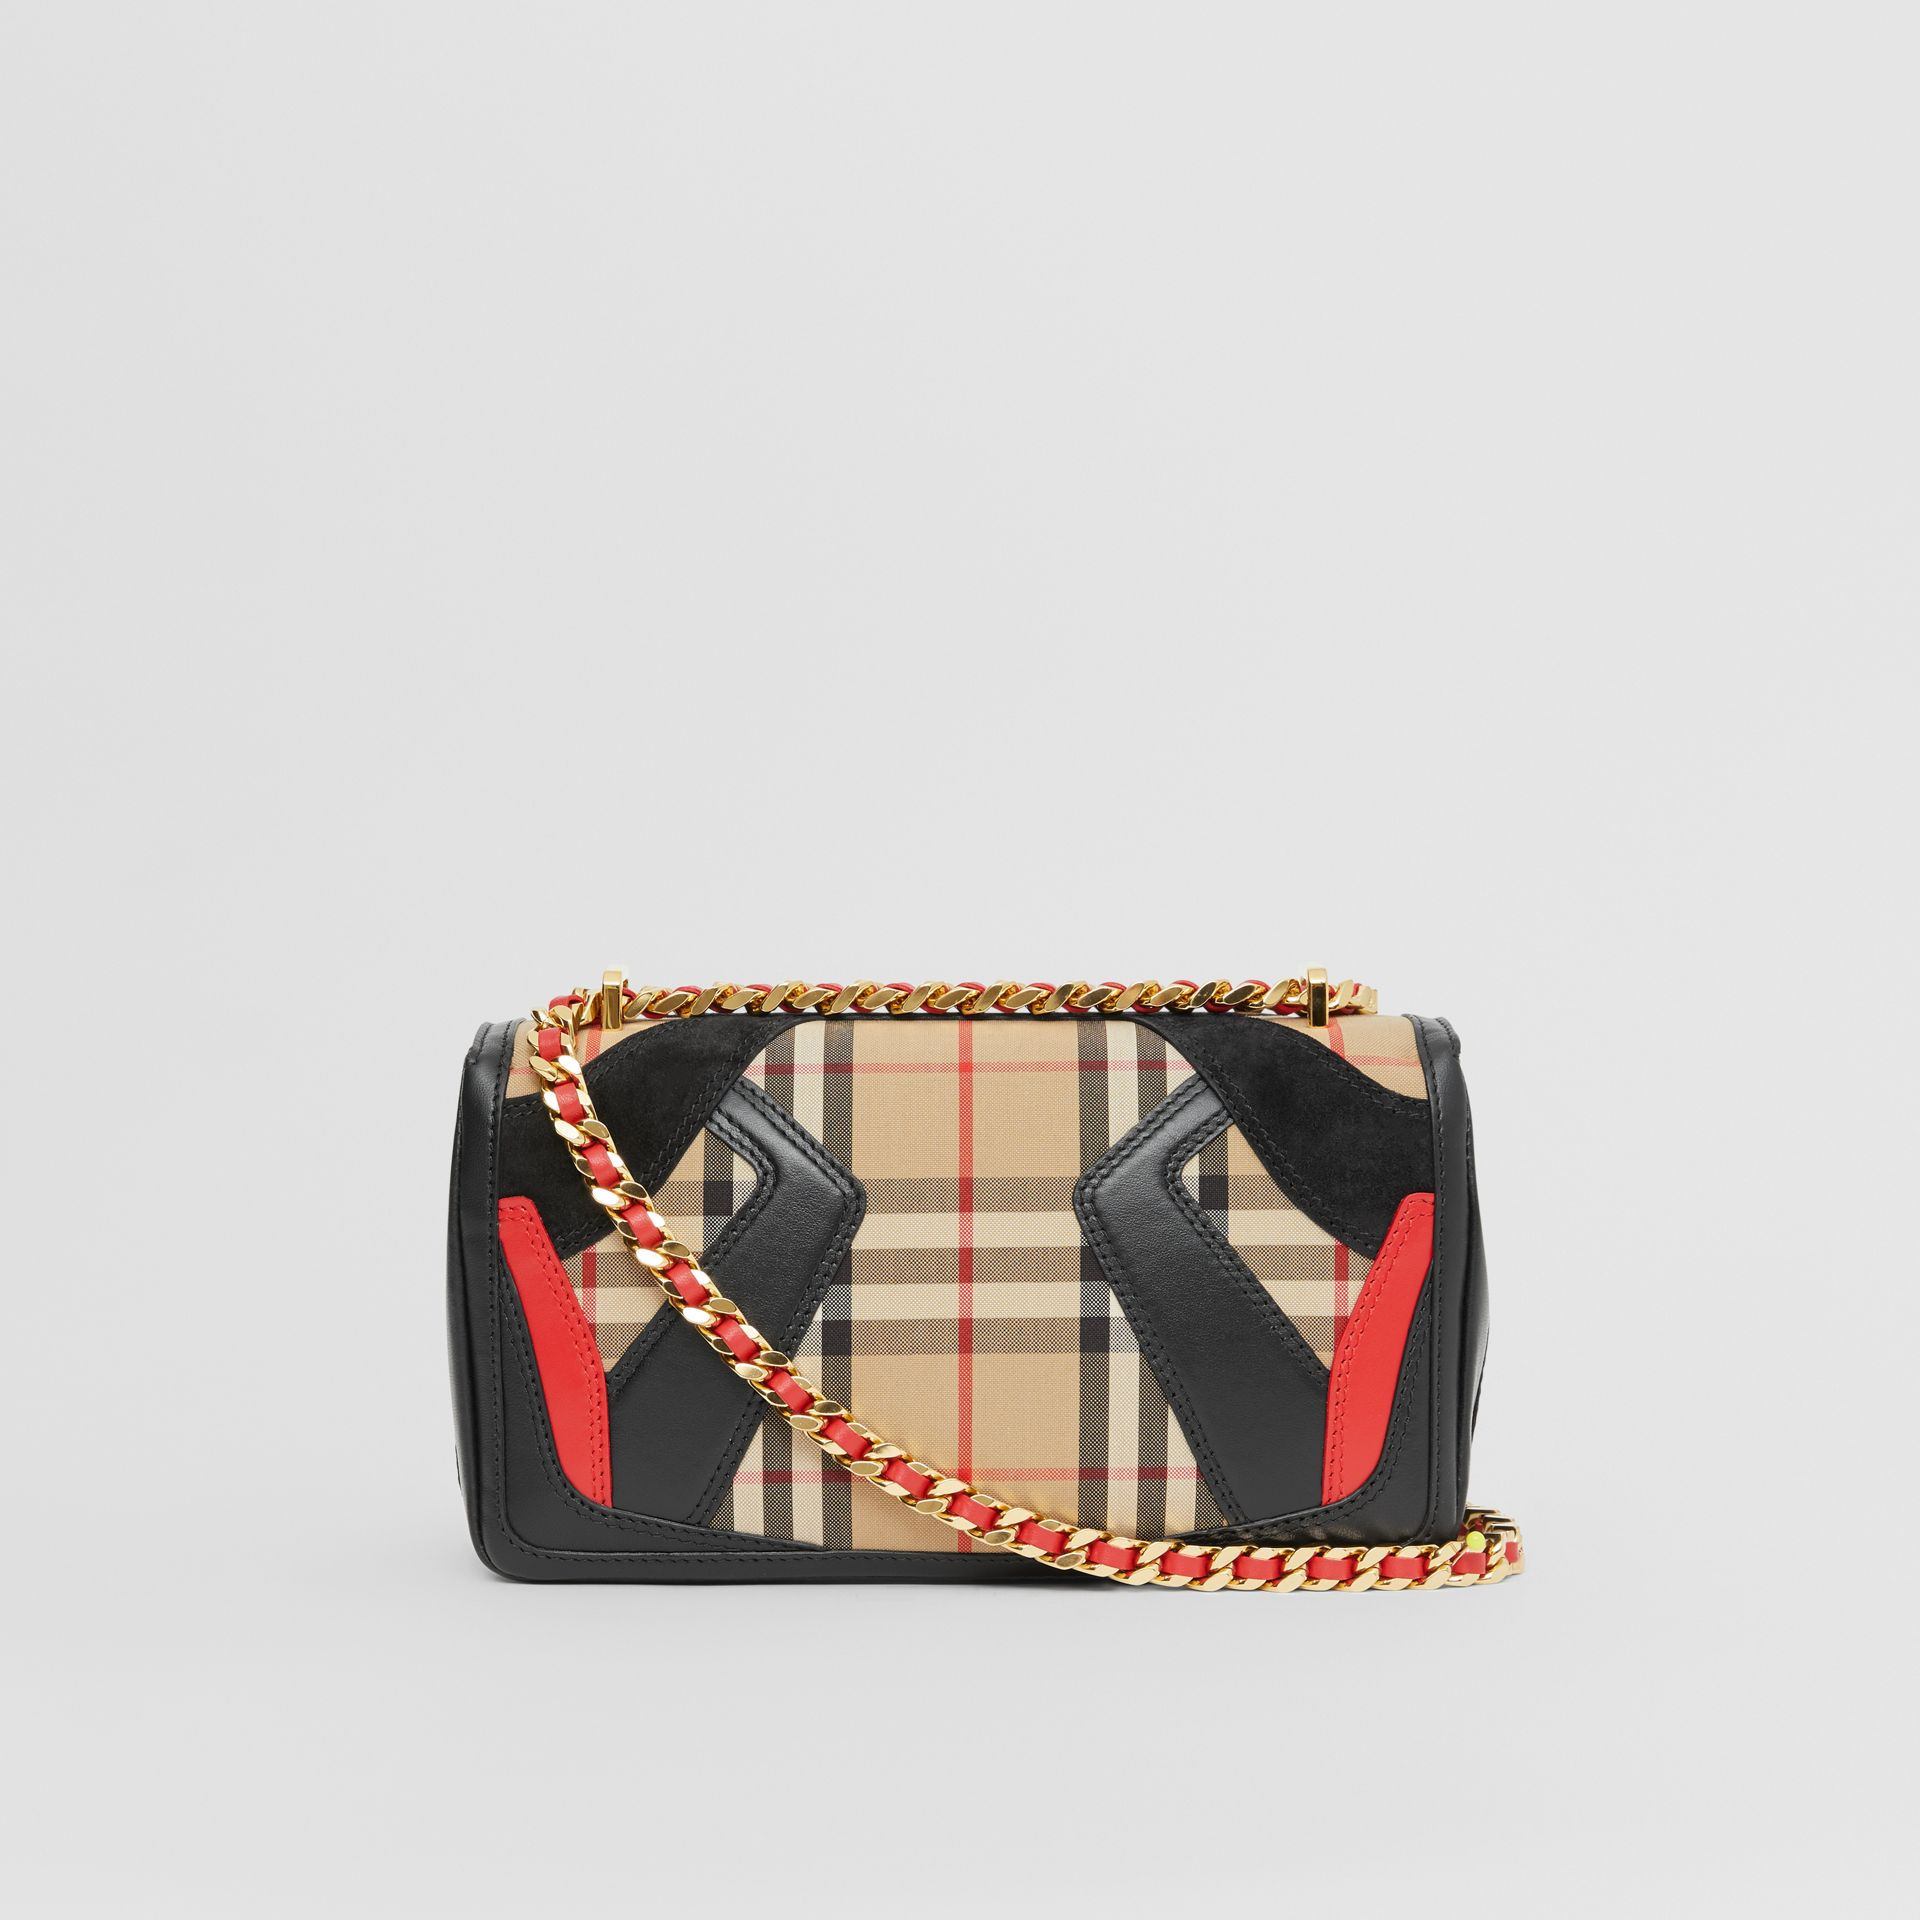 Small Appliqué Vintage Check Lola Bag in Archive Beige - Women | Burberry Australia - gallery image 7